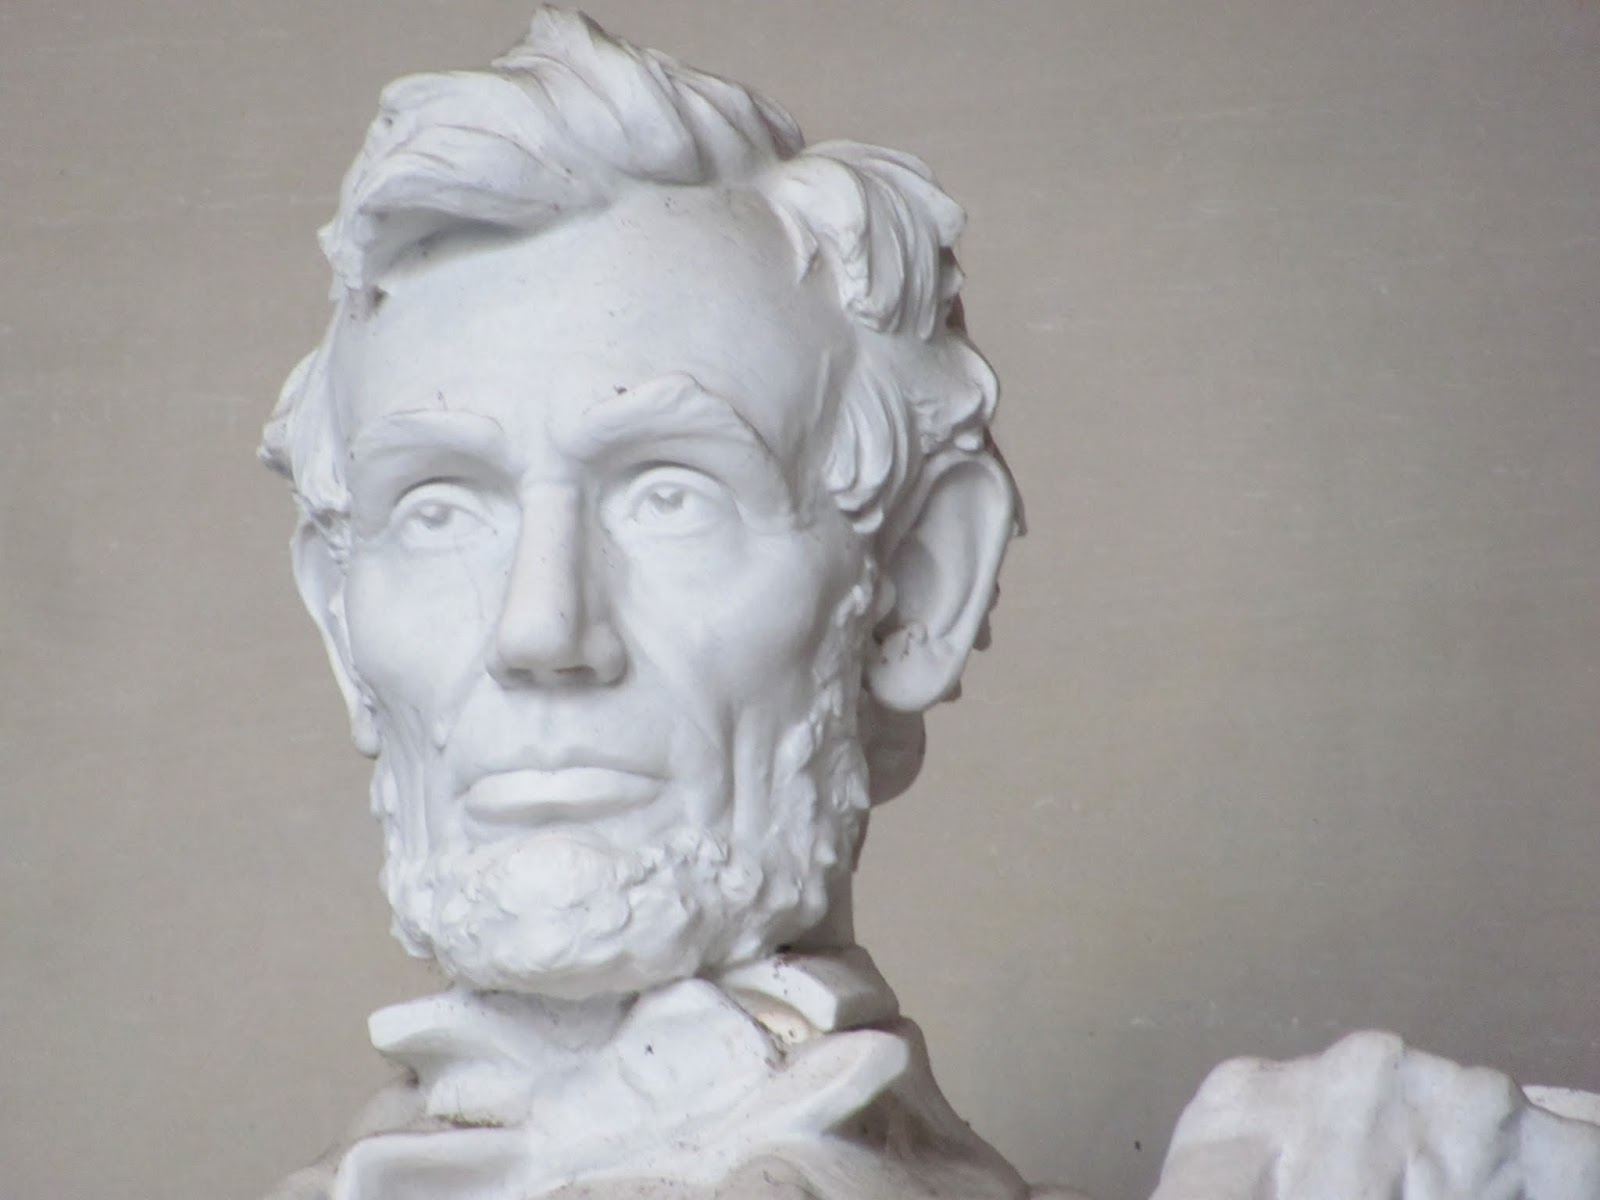 Lincoln Memorial statue closeup photo